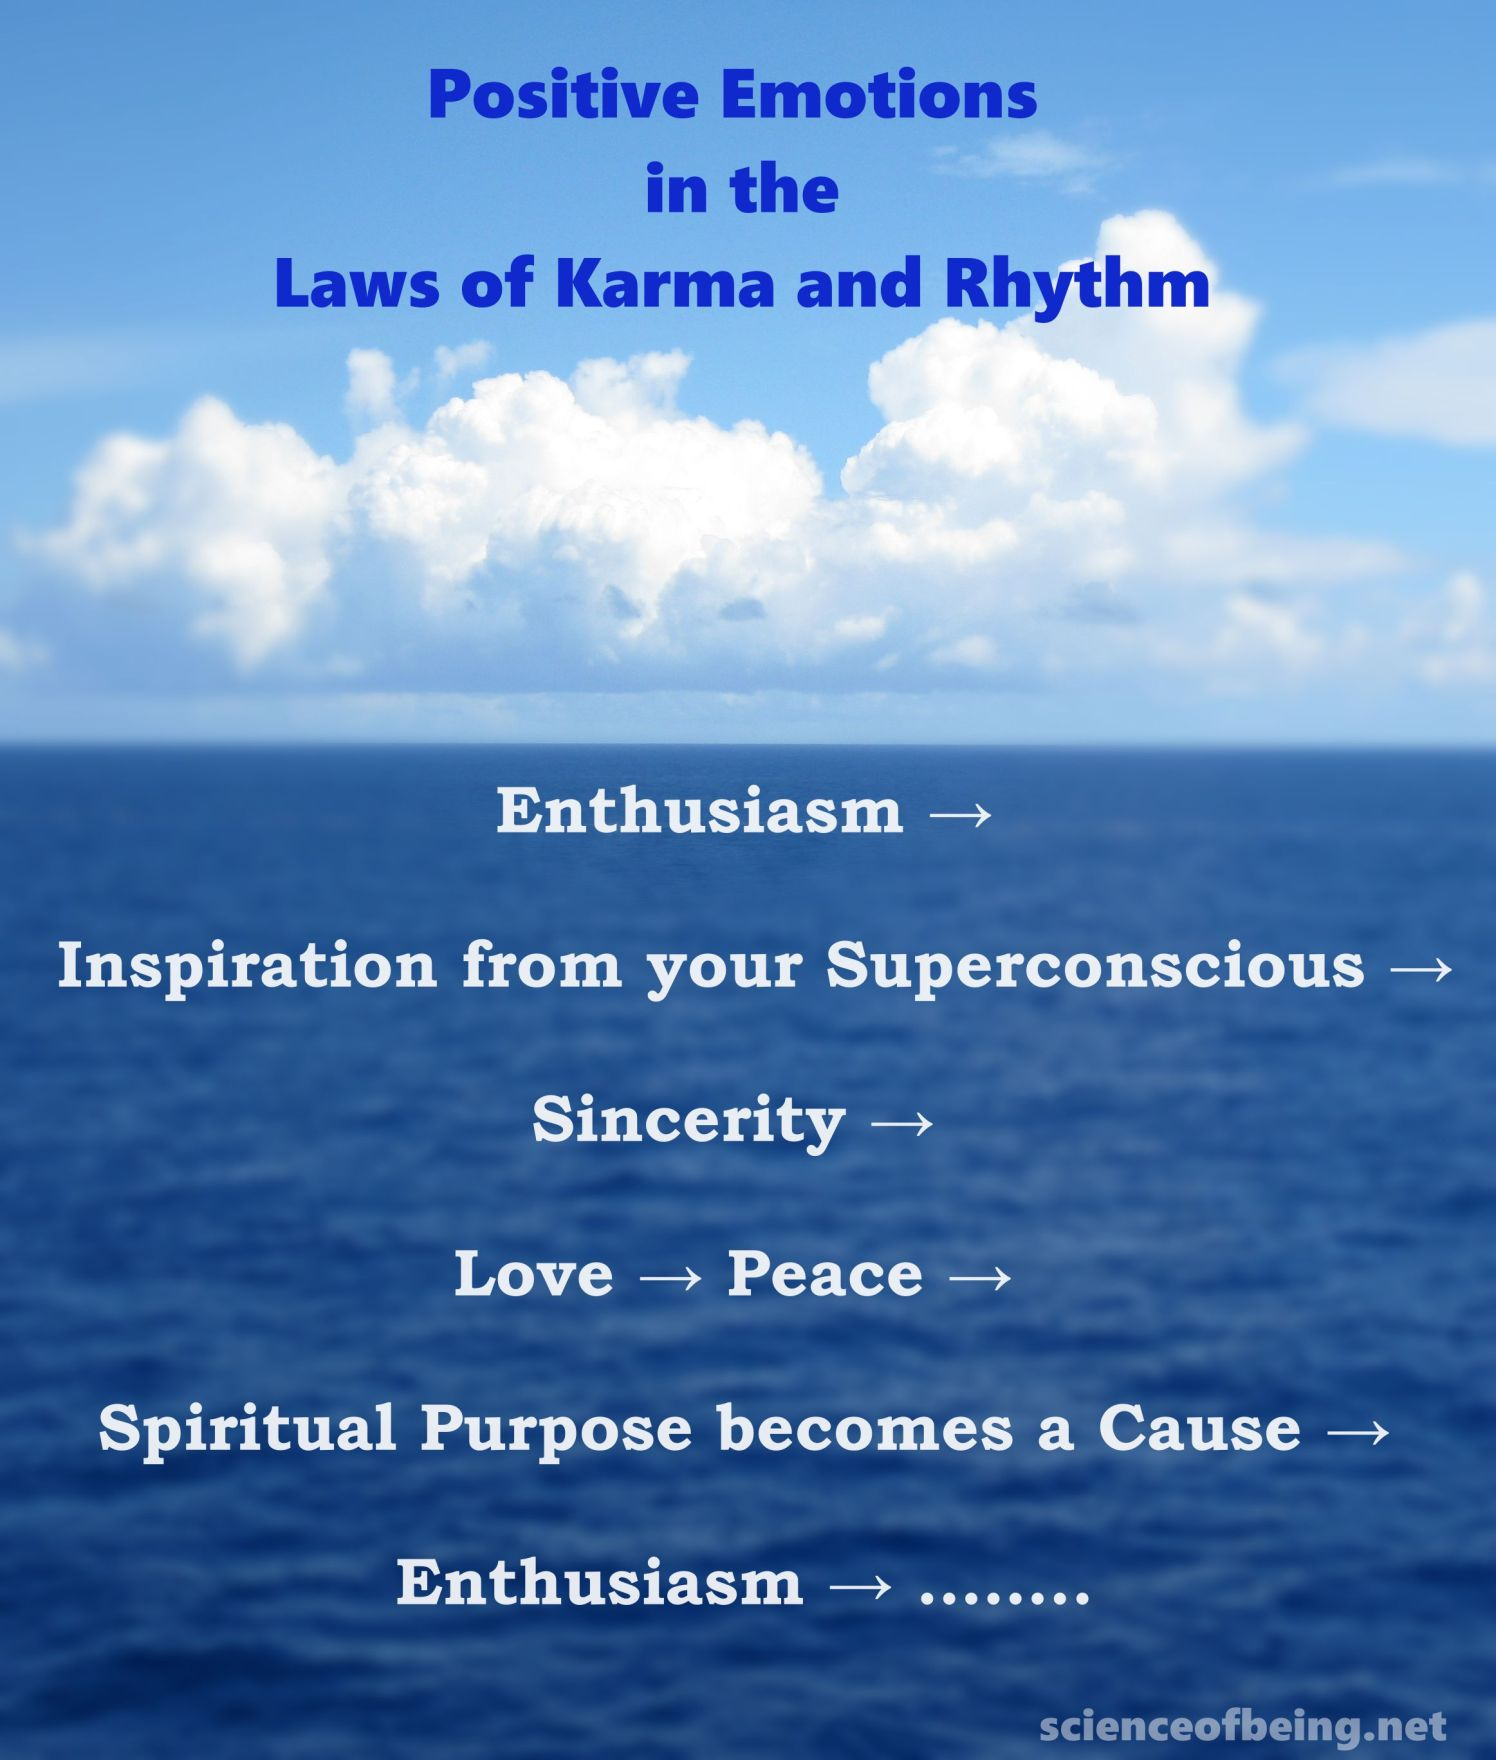 Positive Emotions in the Law of Karma and Rhythm